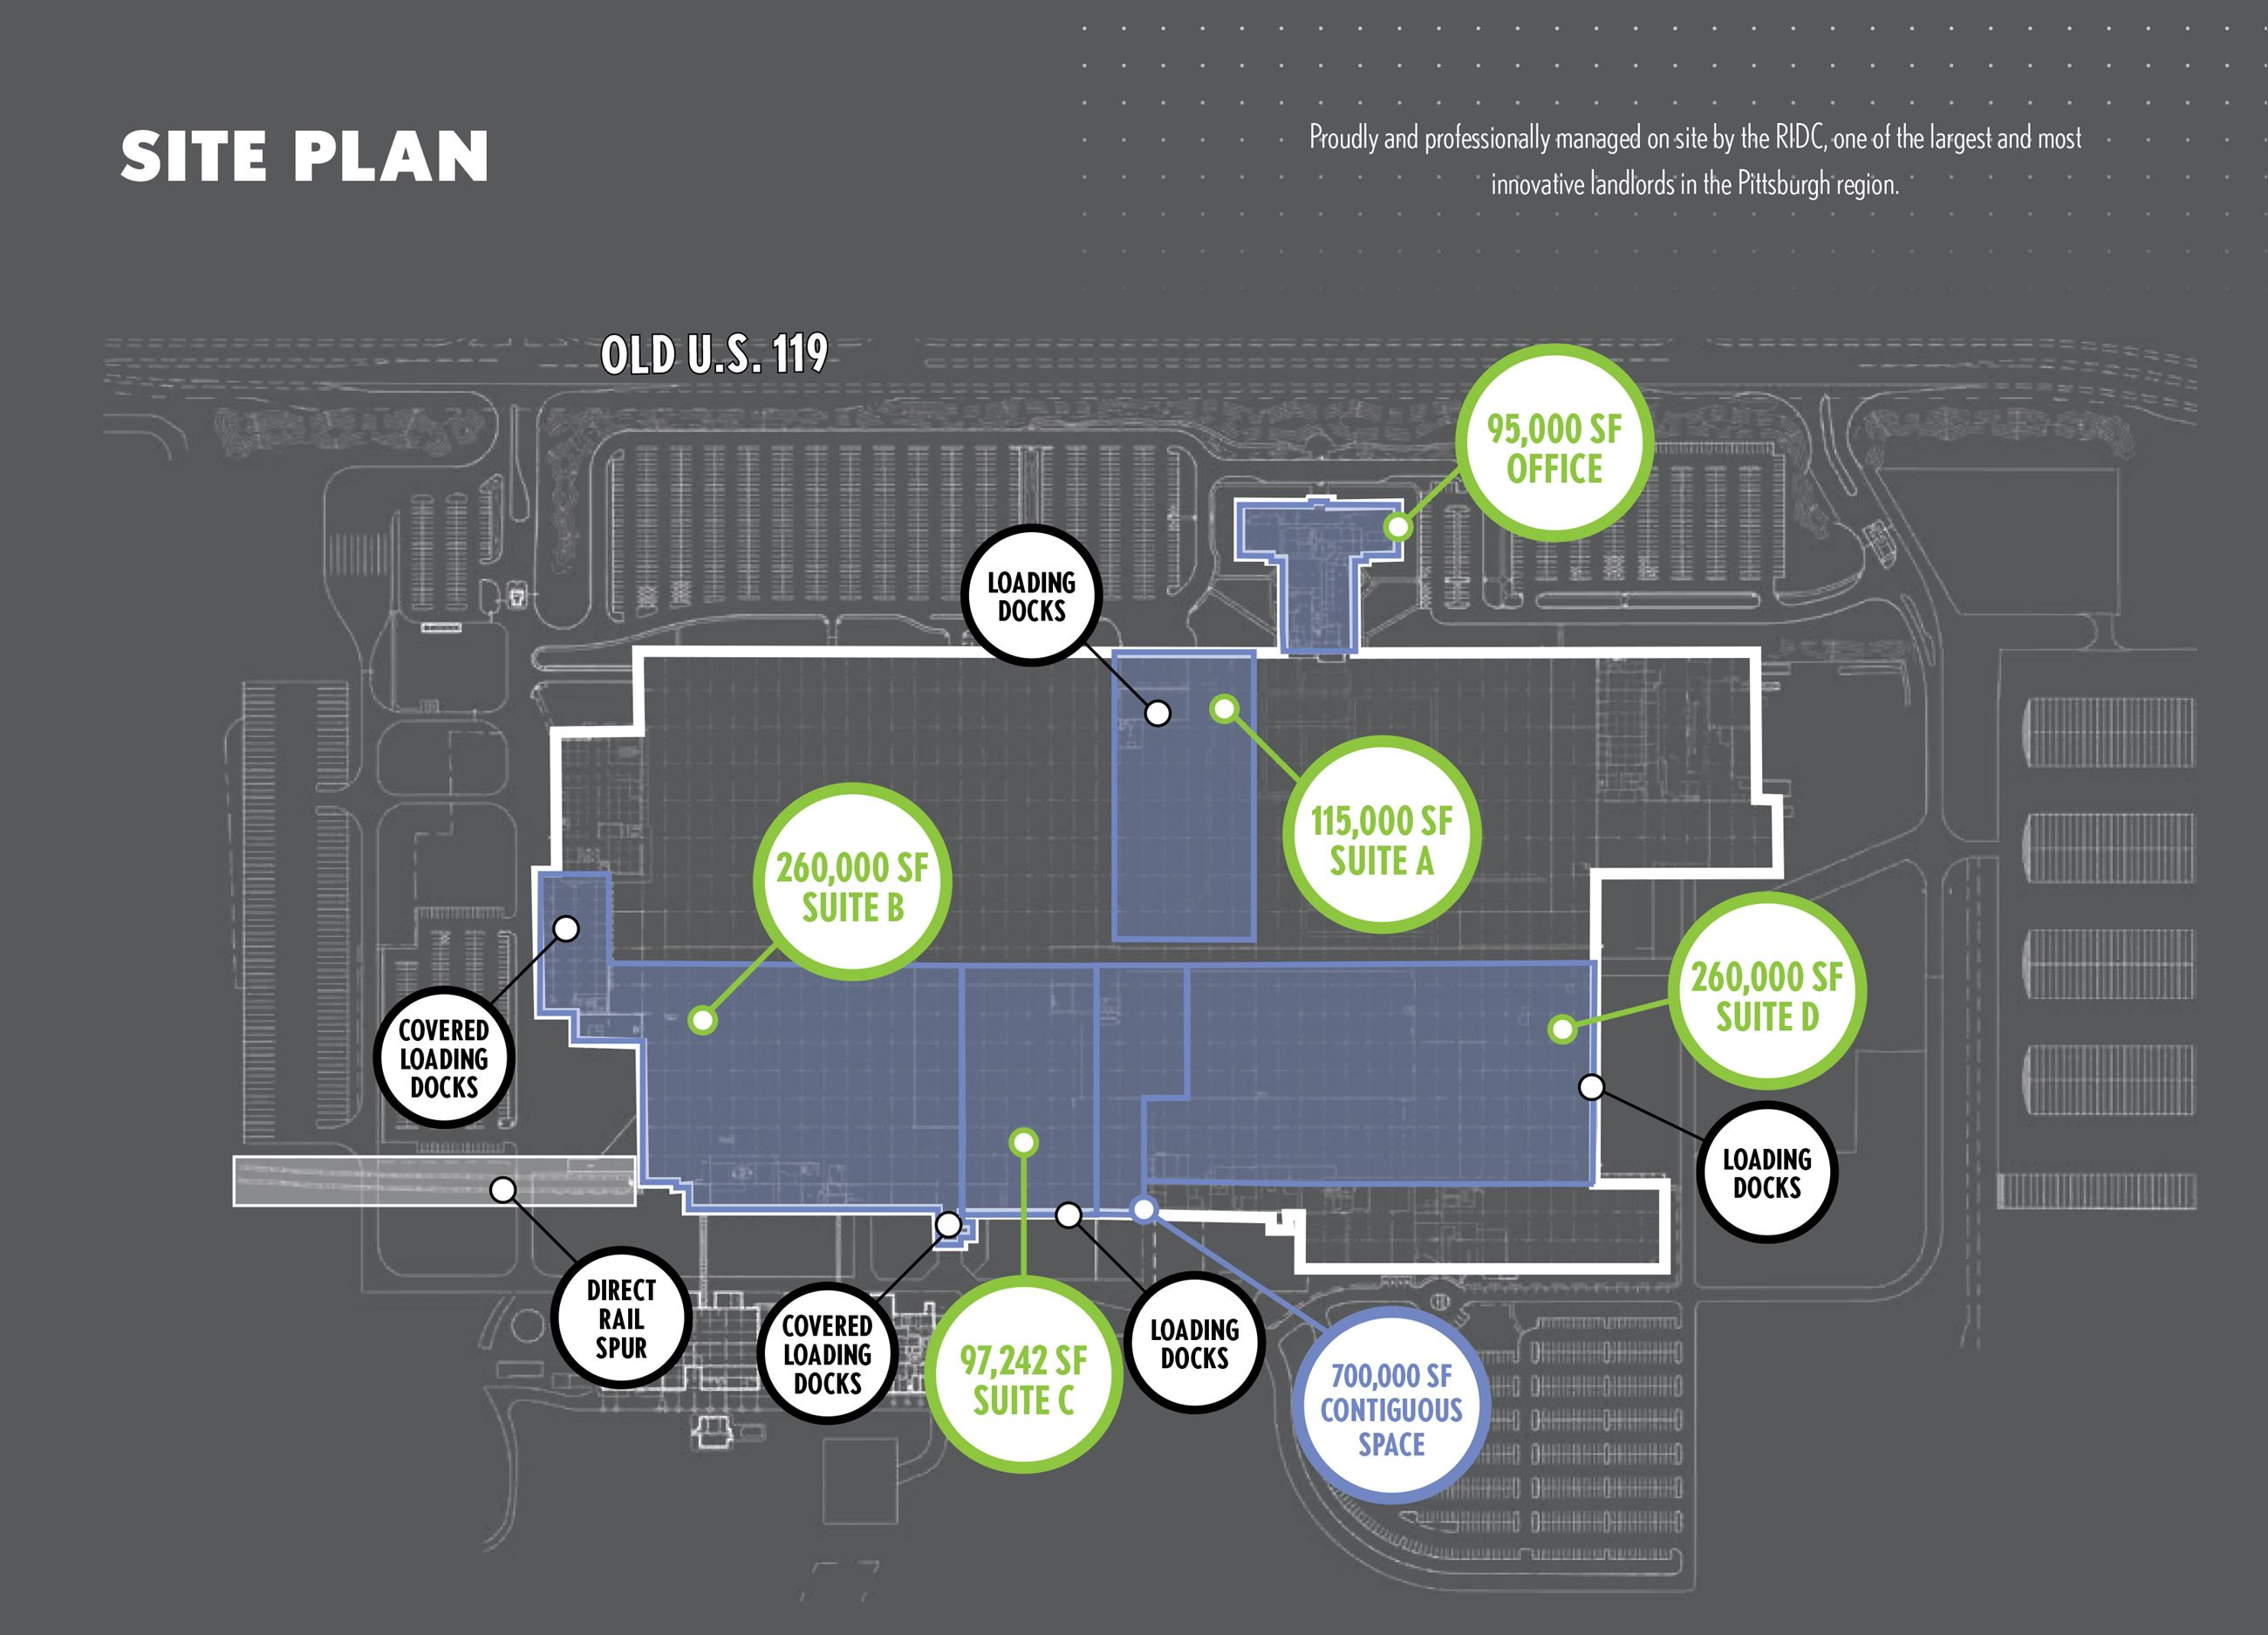 Westmoreland Innovation Center floorplan